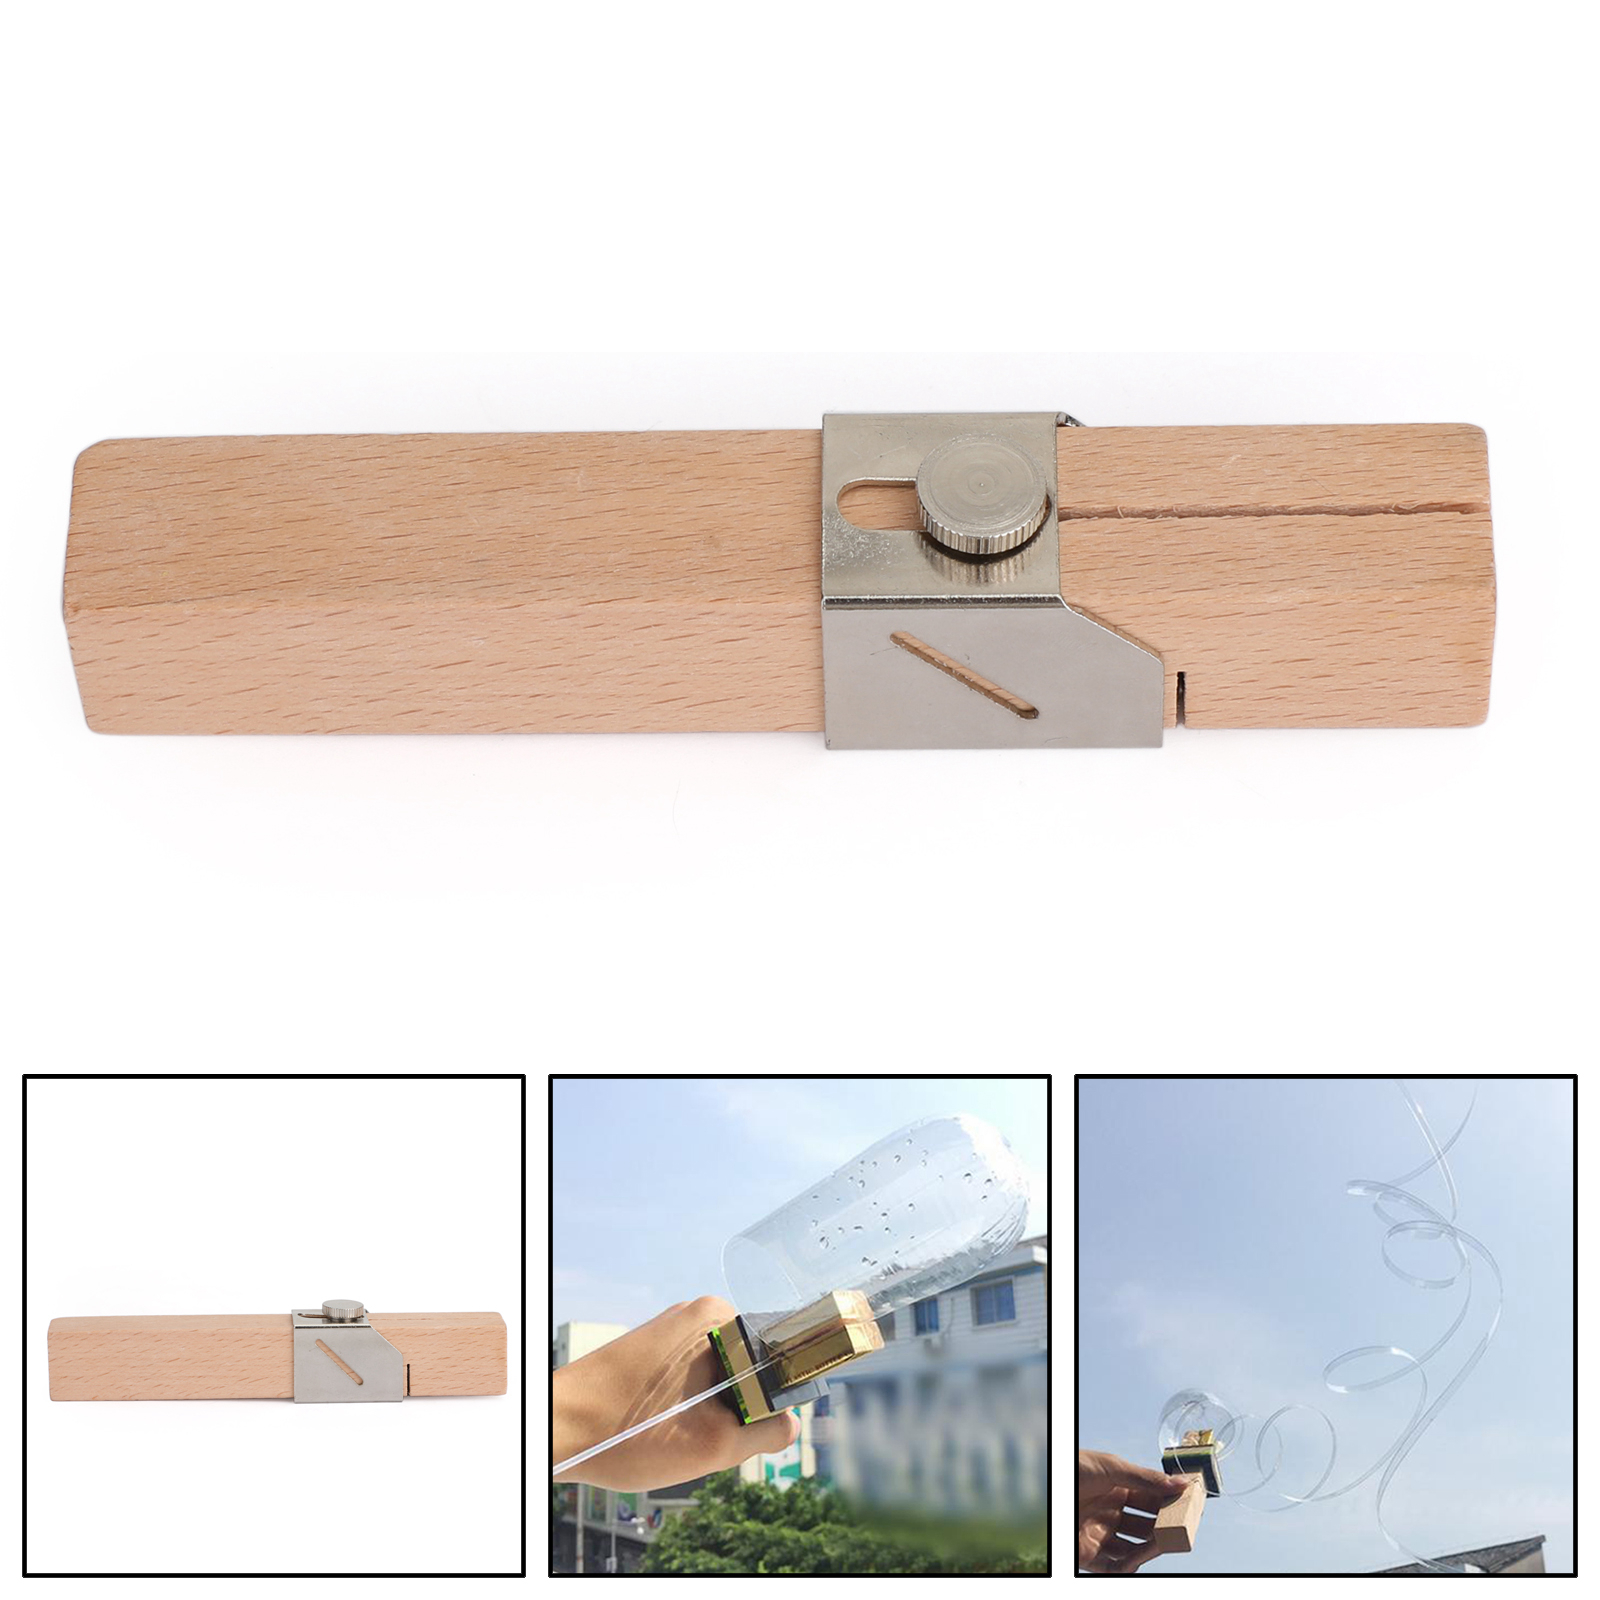 Areyourshop Portable Creative Plastic Bottle Cutter Outdoor Household Smart Bottles Rope Recycling DIY Tools